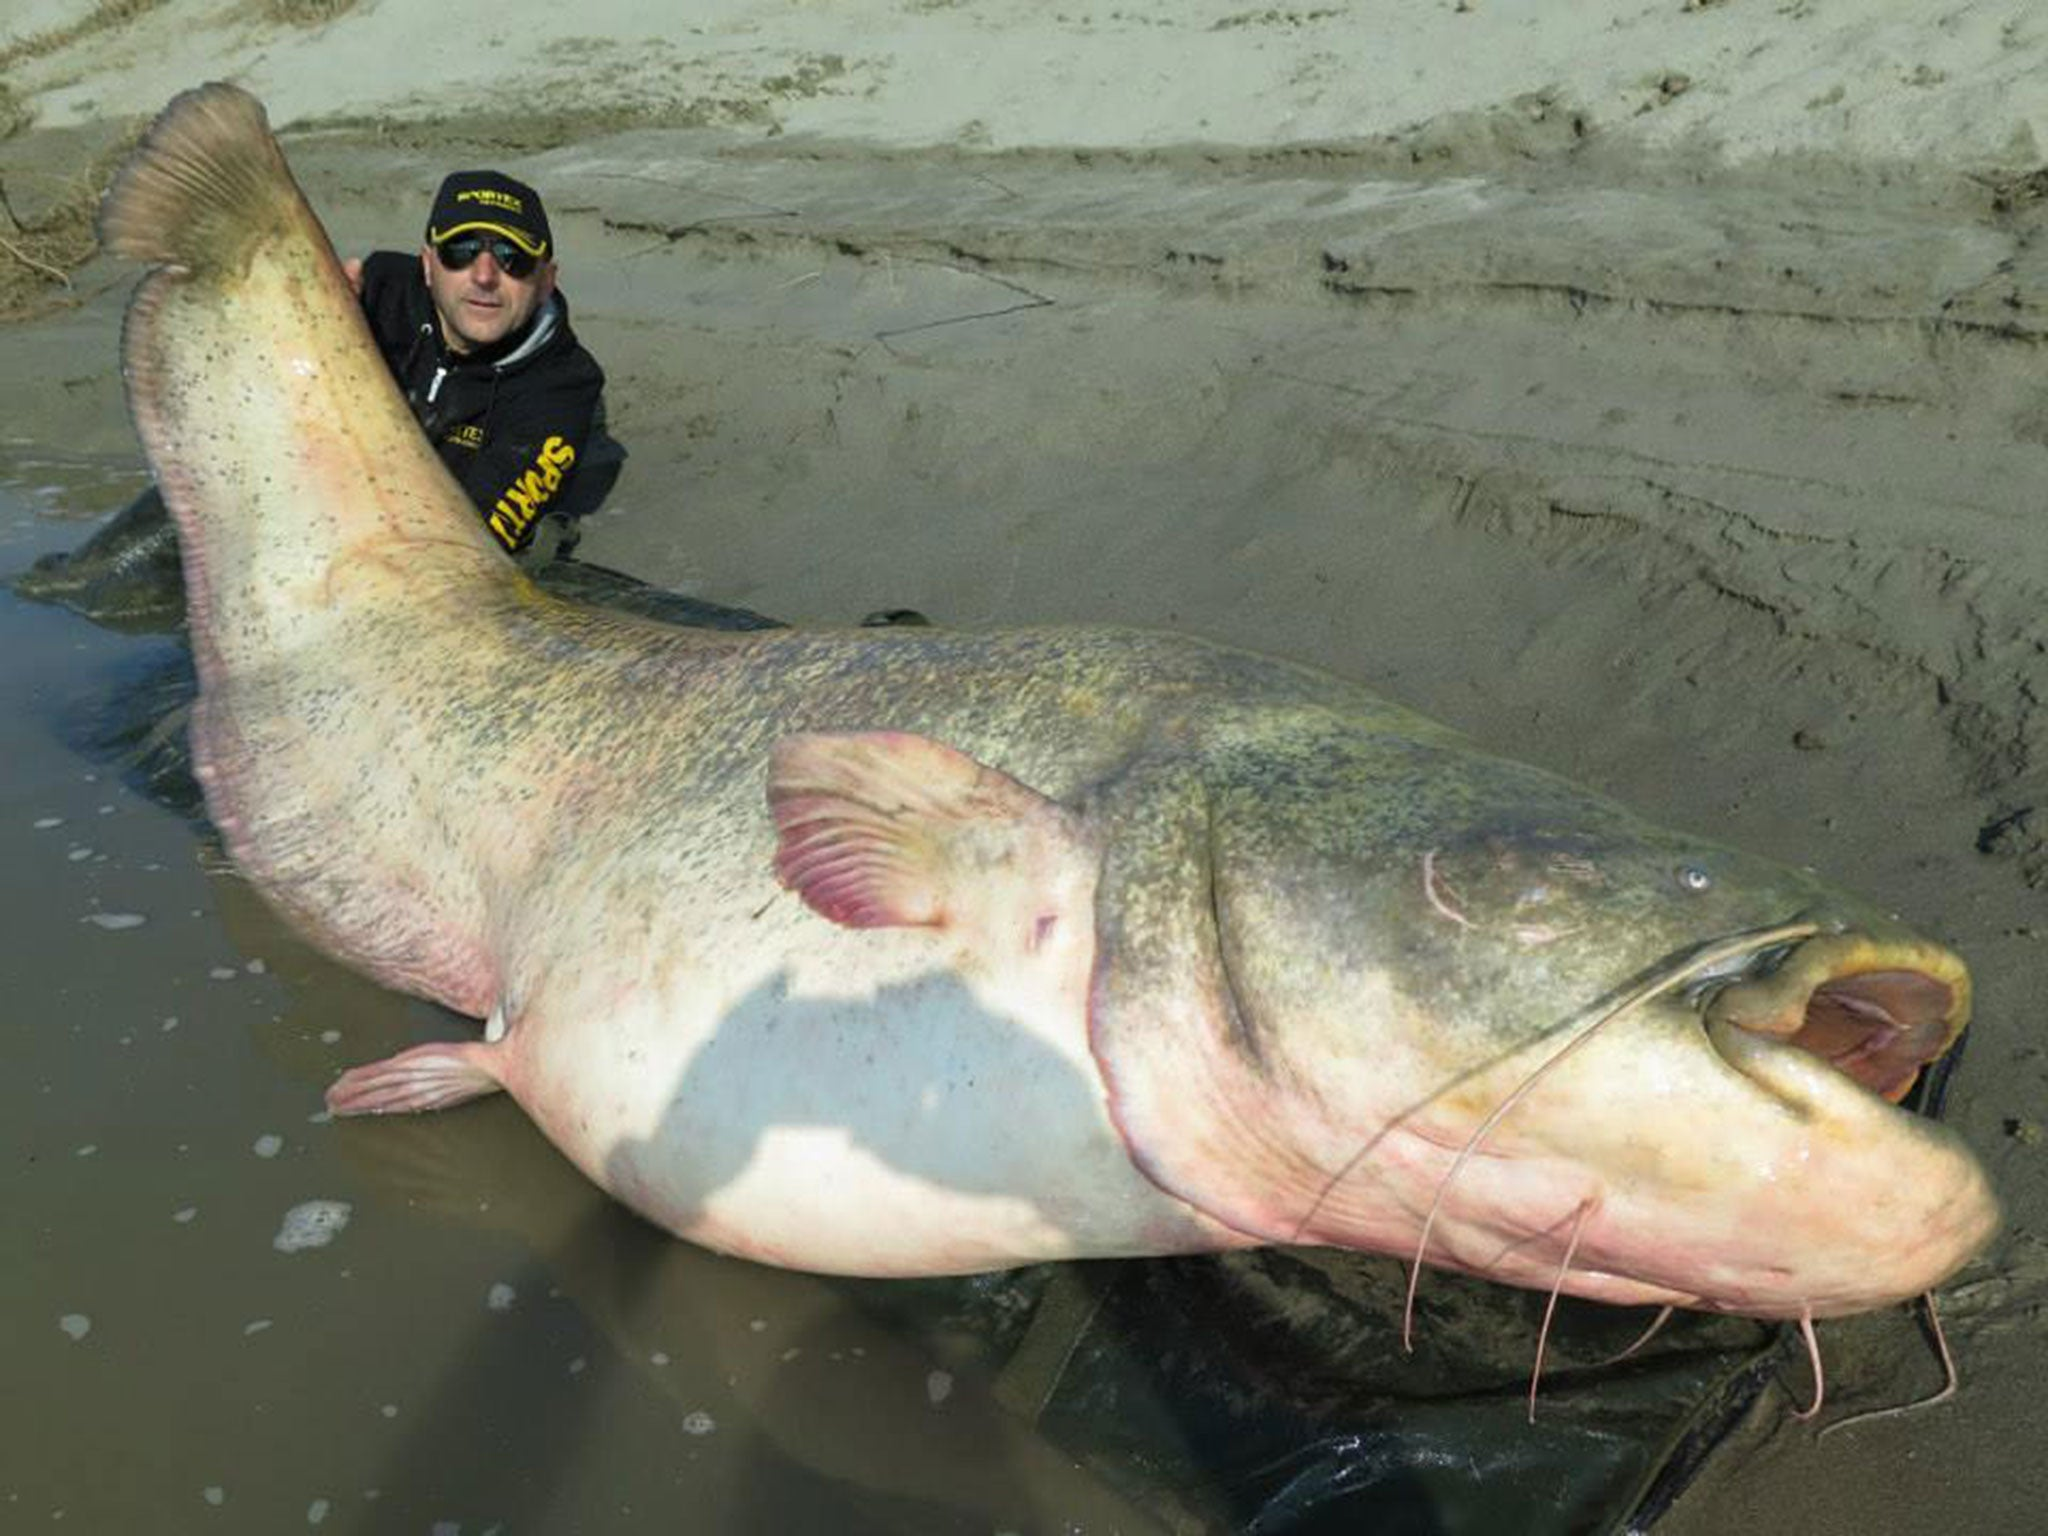 Enormous    stone catfish caught with fishing rod in Italy after    minute boat battle   The Independent The Independent